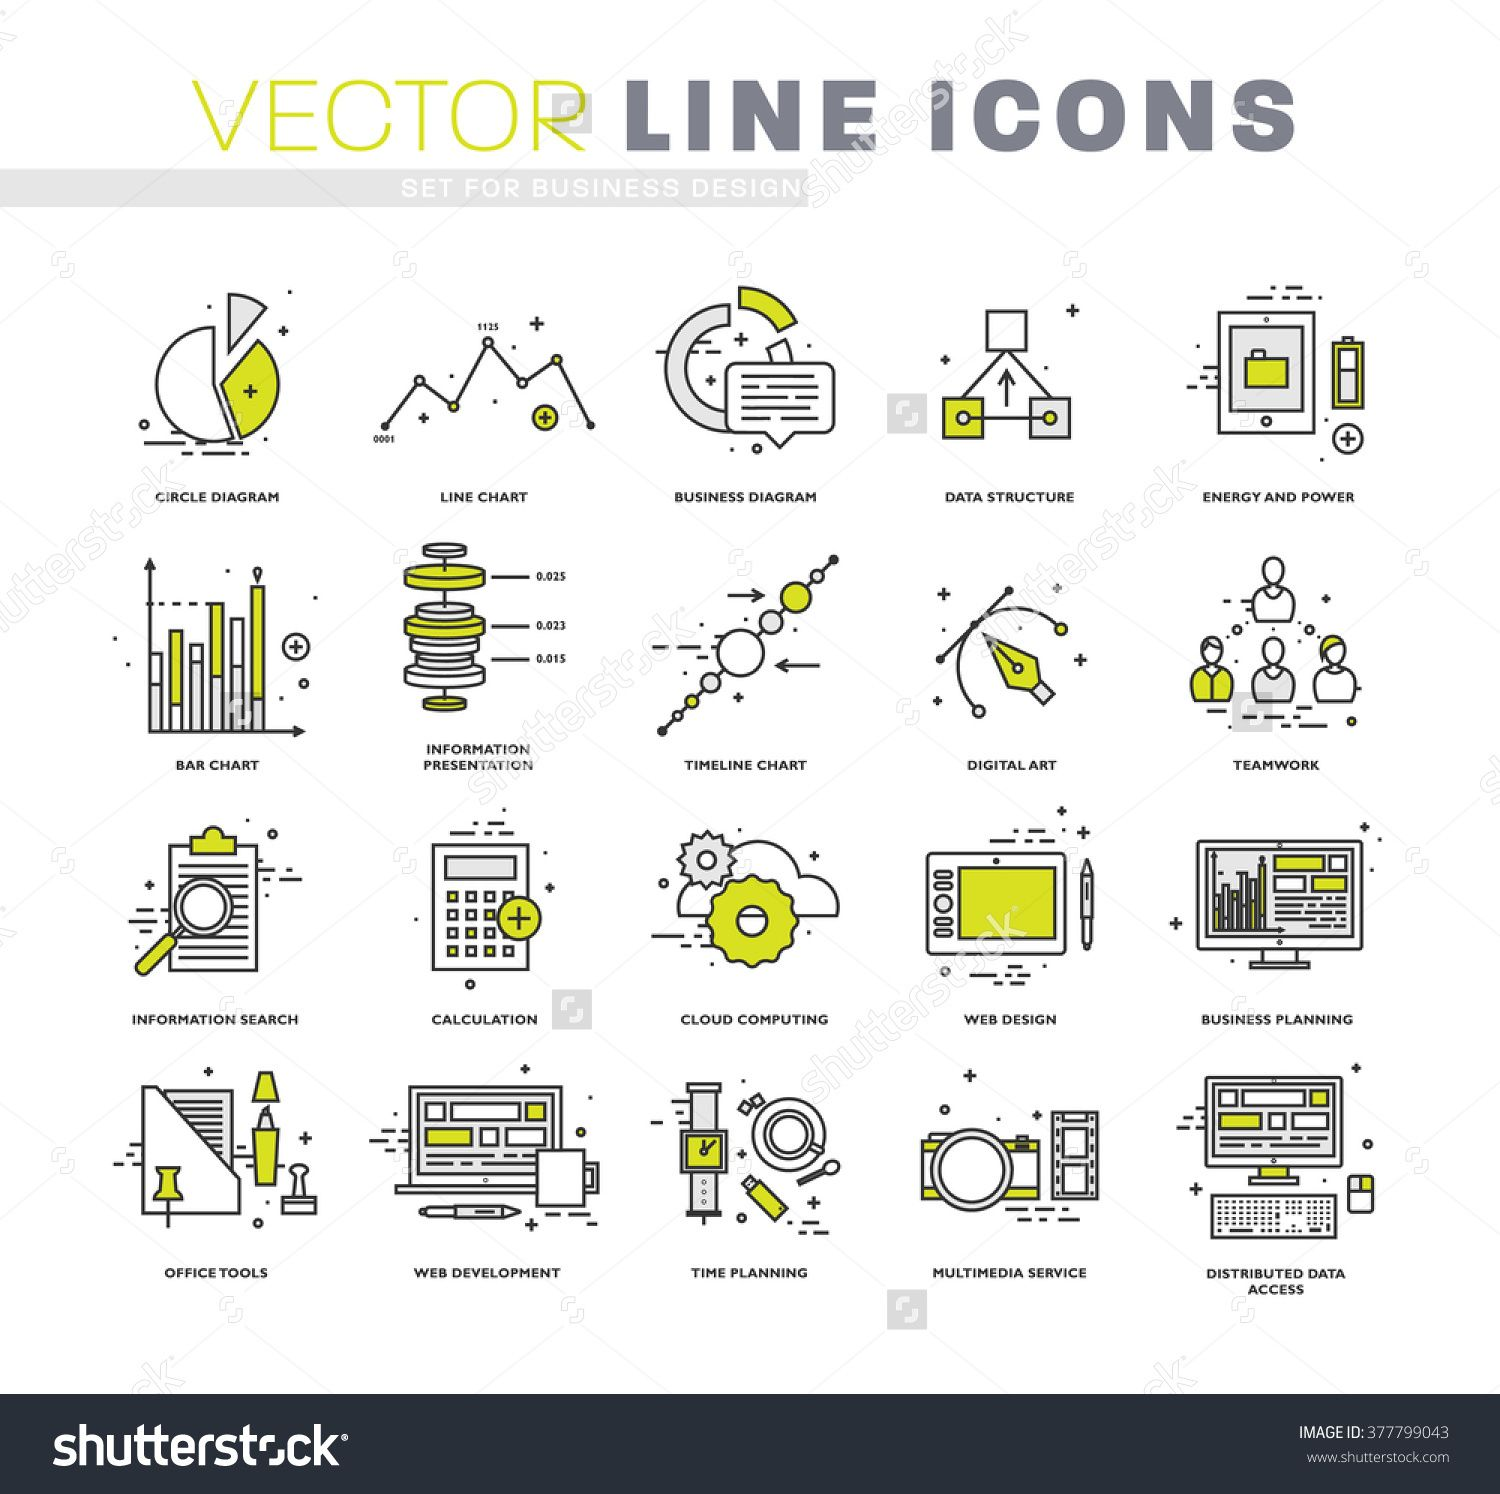 Thin line icons set business elements for websites banners simple linear pictograms collection logo concepts pack for trendy designs premium quality pictogram pack 377799043 shutterstock ccuart Images